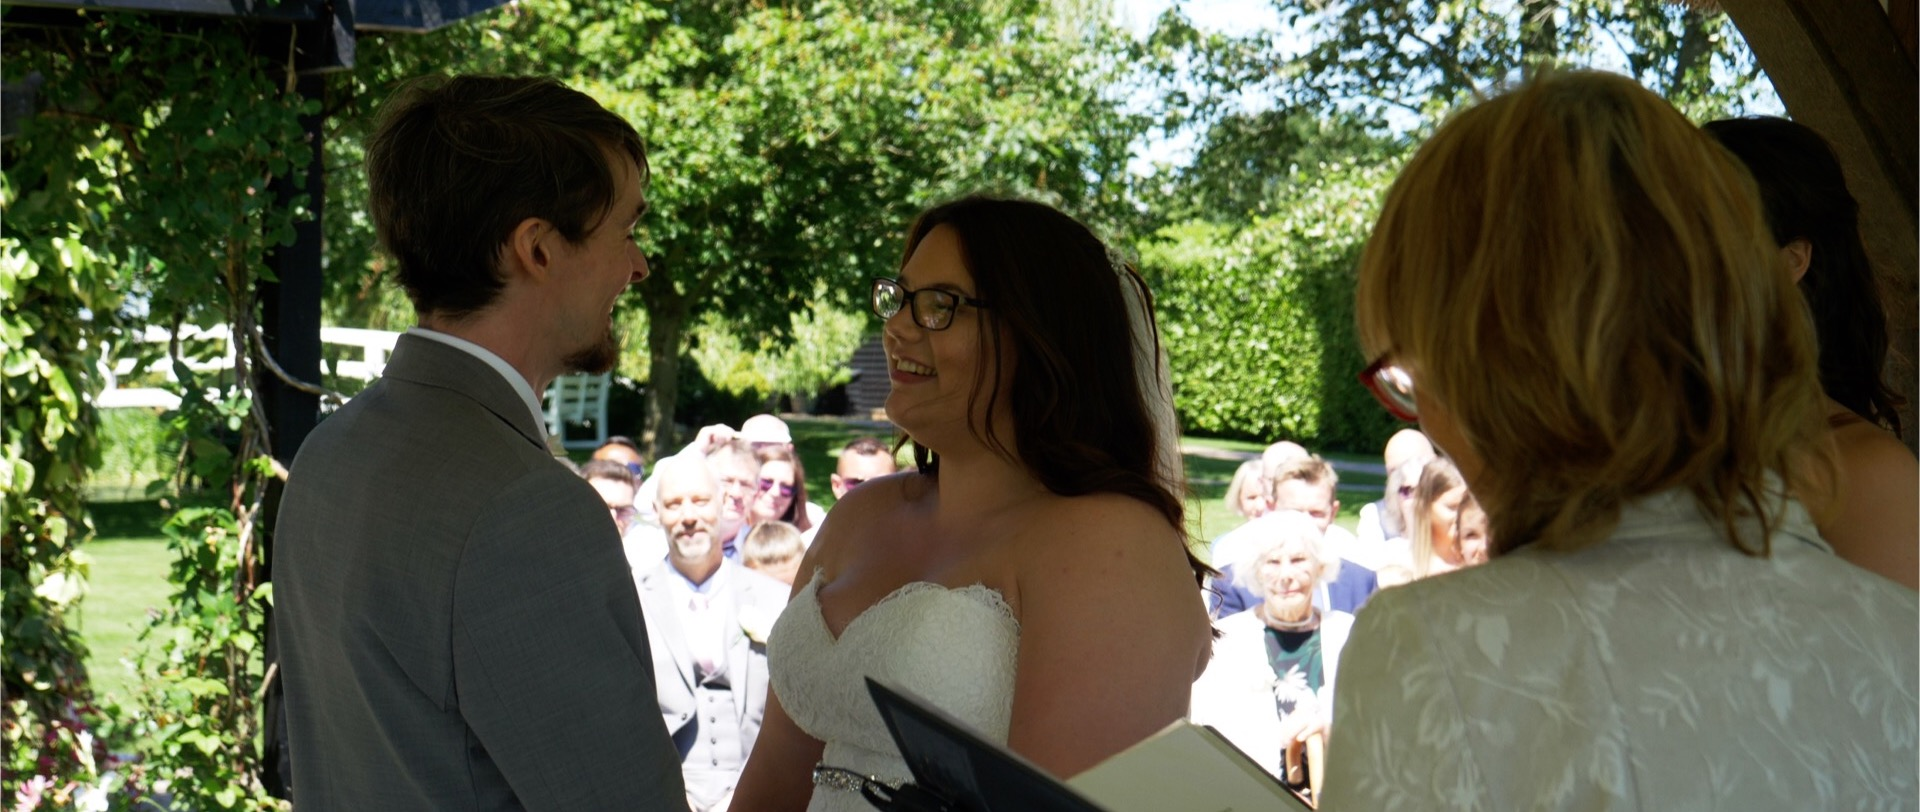 Wedding Ceremony Video at High House Essex.jpg